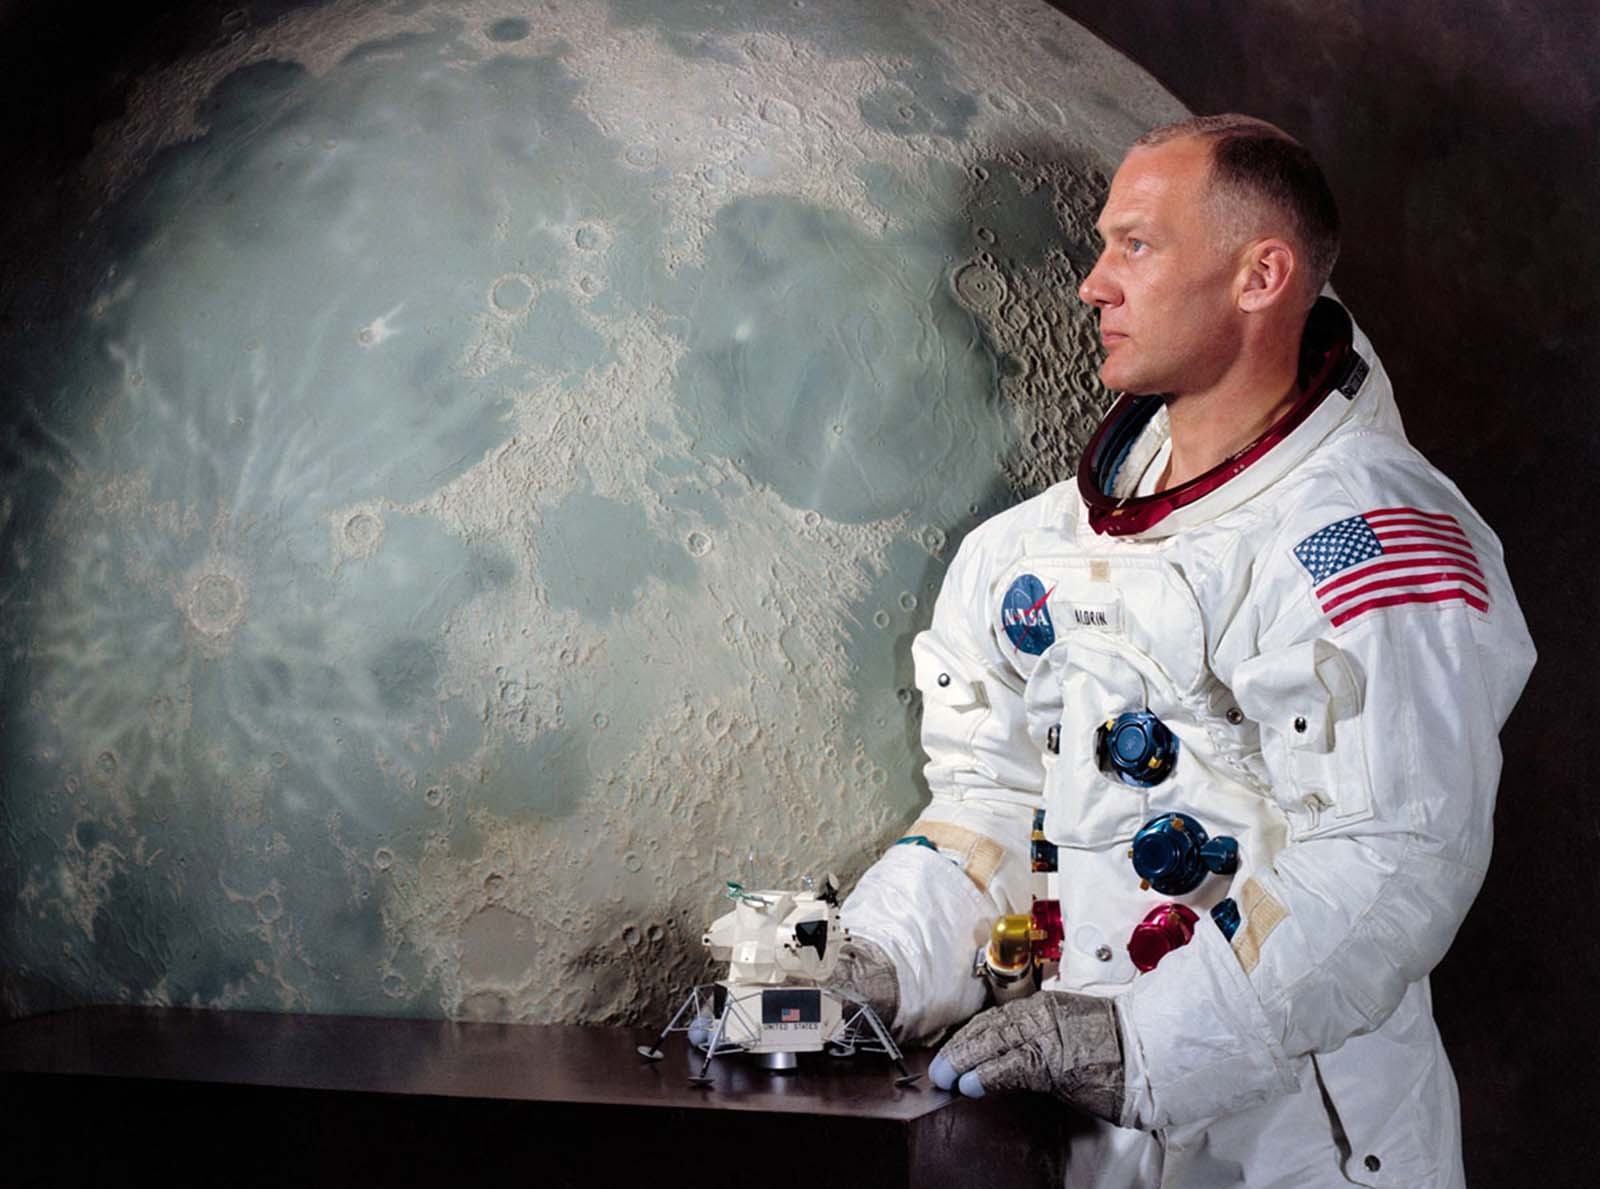 An official portrait of Apollo 11 Lunar Module Pilot Buzz Aldrin.